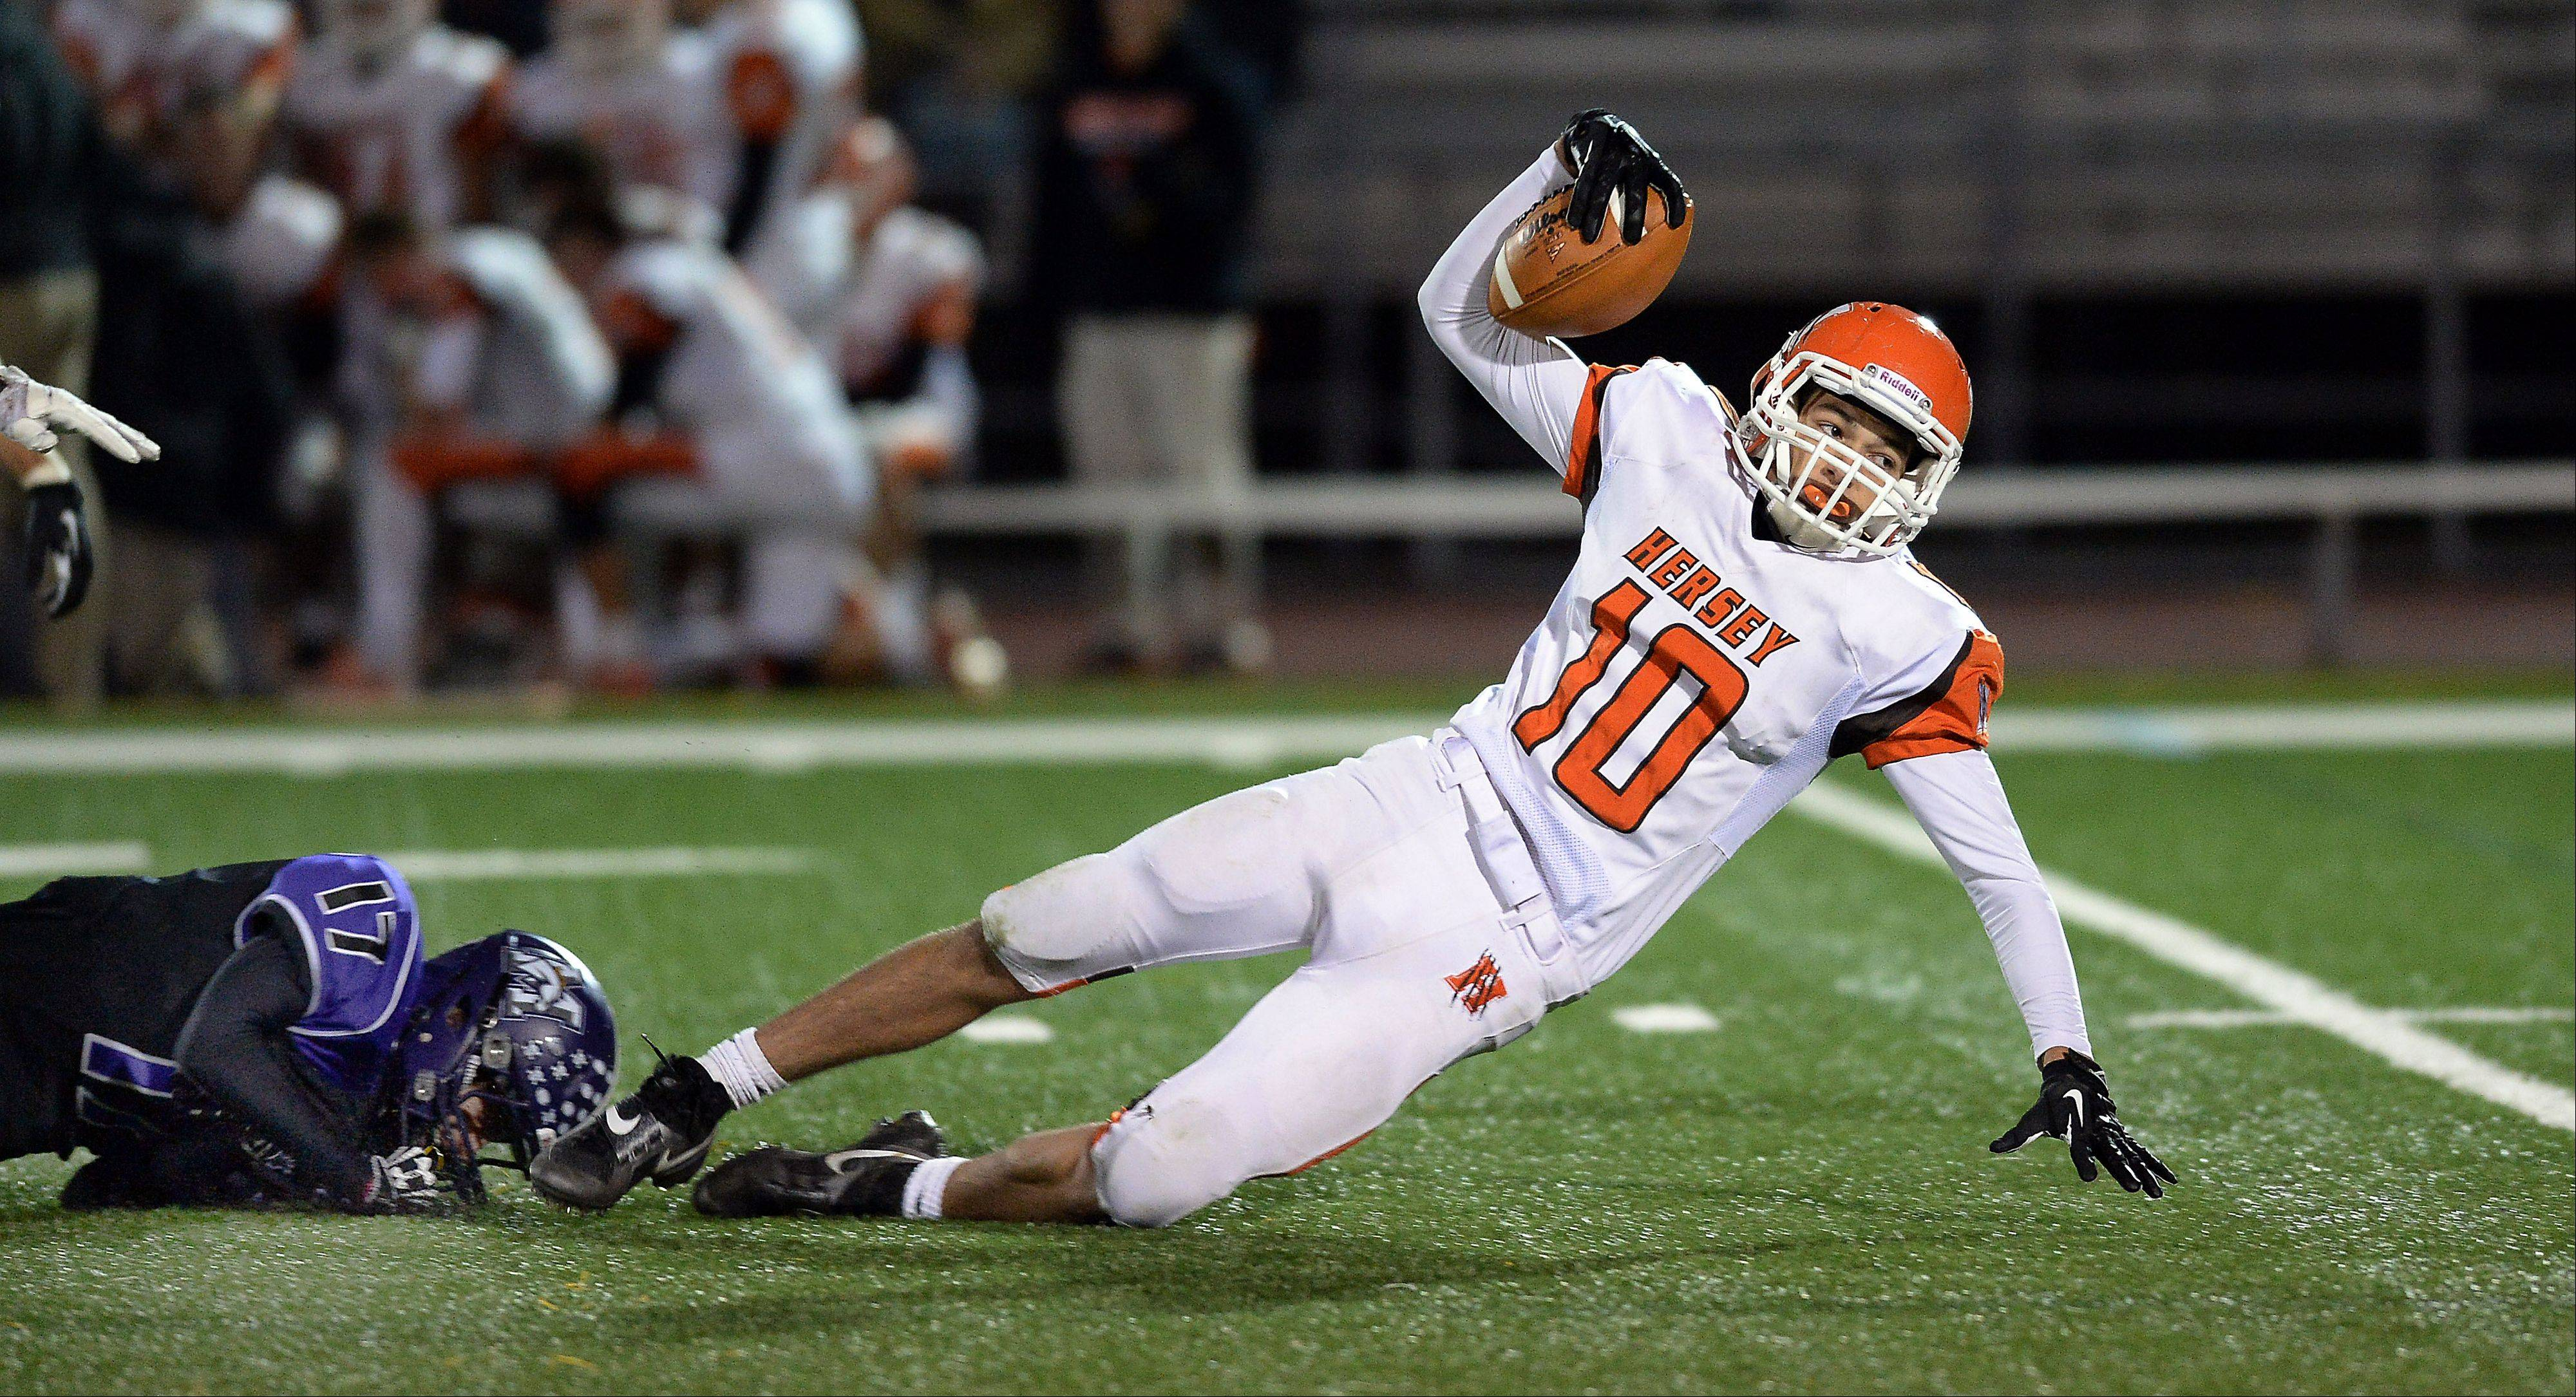 Hersey's Eddie Miklasz has made a habit of stretching defenses this season. Here Rolling Meadows' Kevin Adair makes a shoestring tackle in a matchup of Mid-Suburban East co-champs.